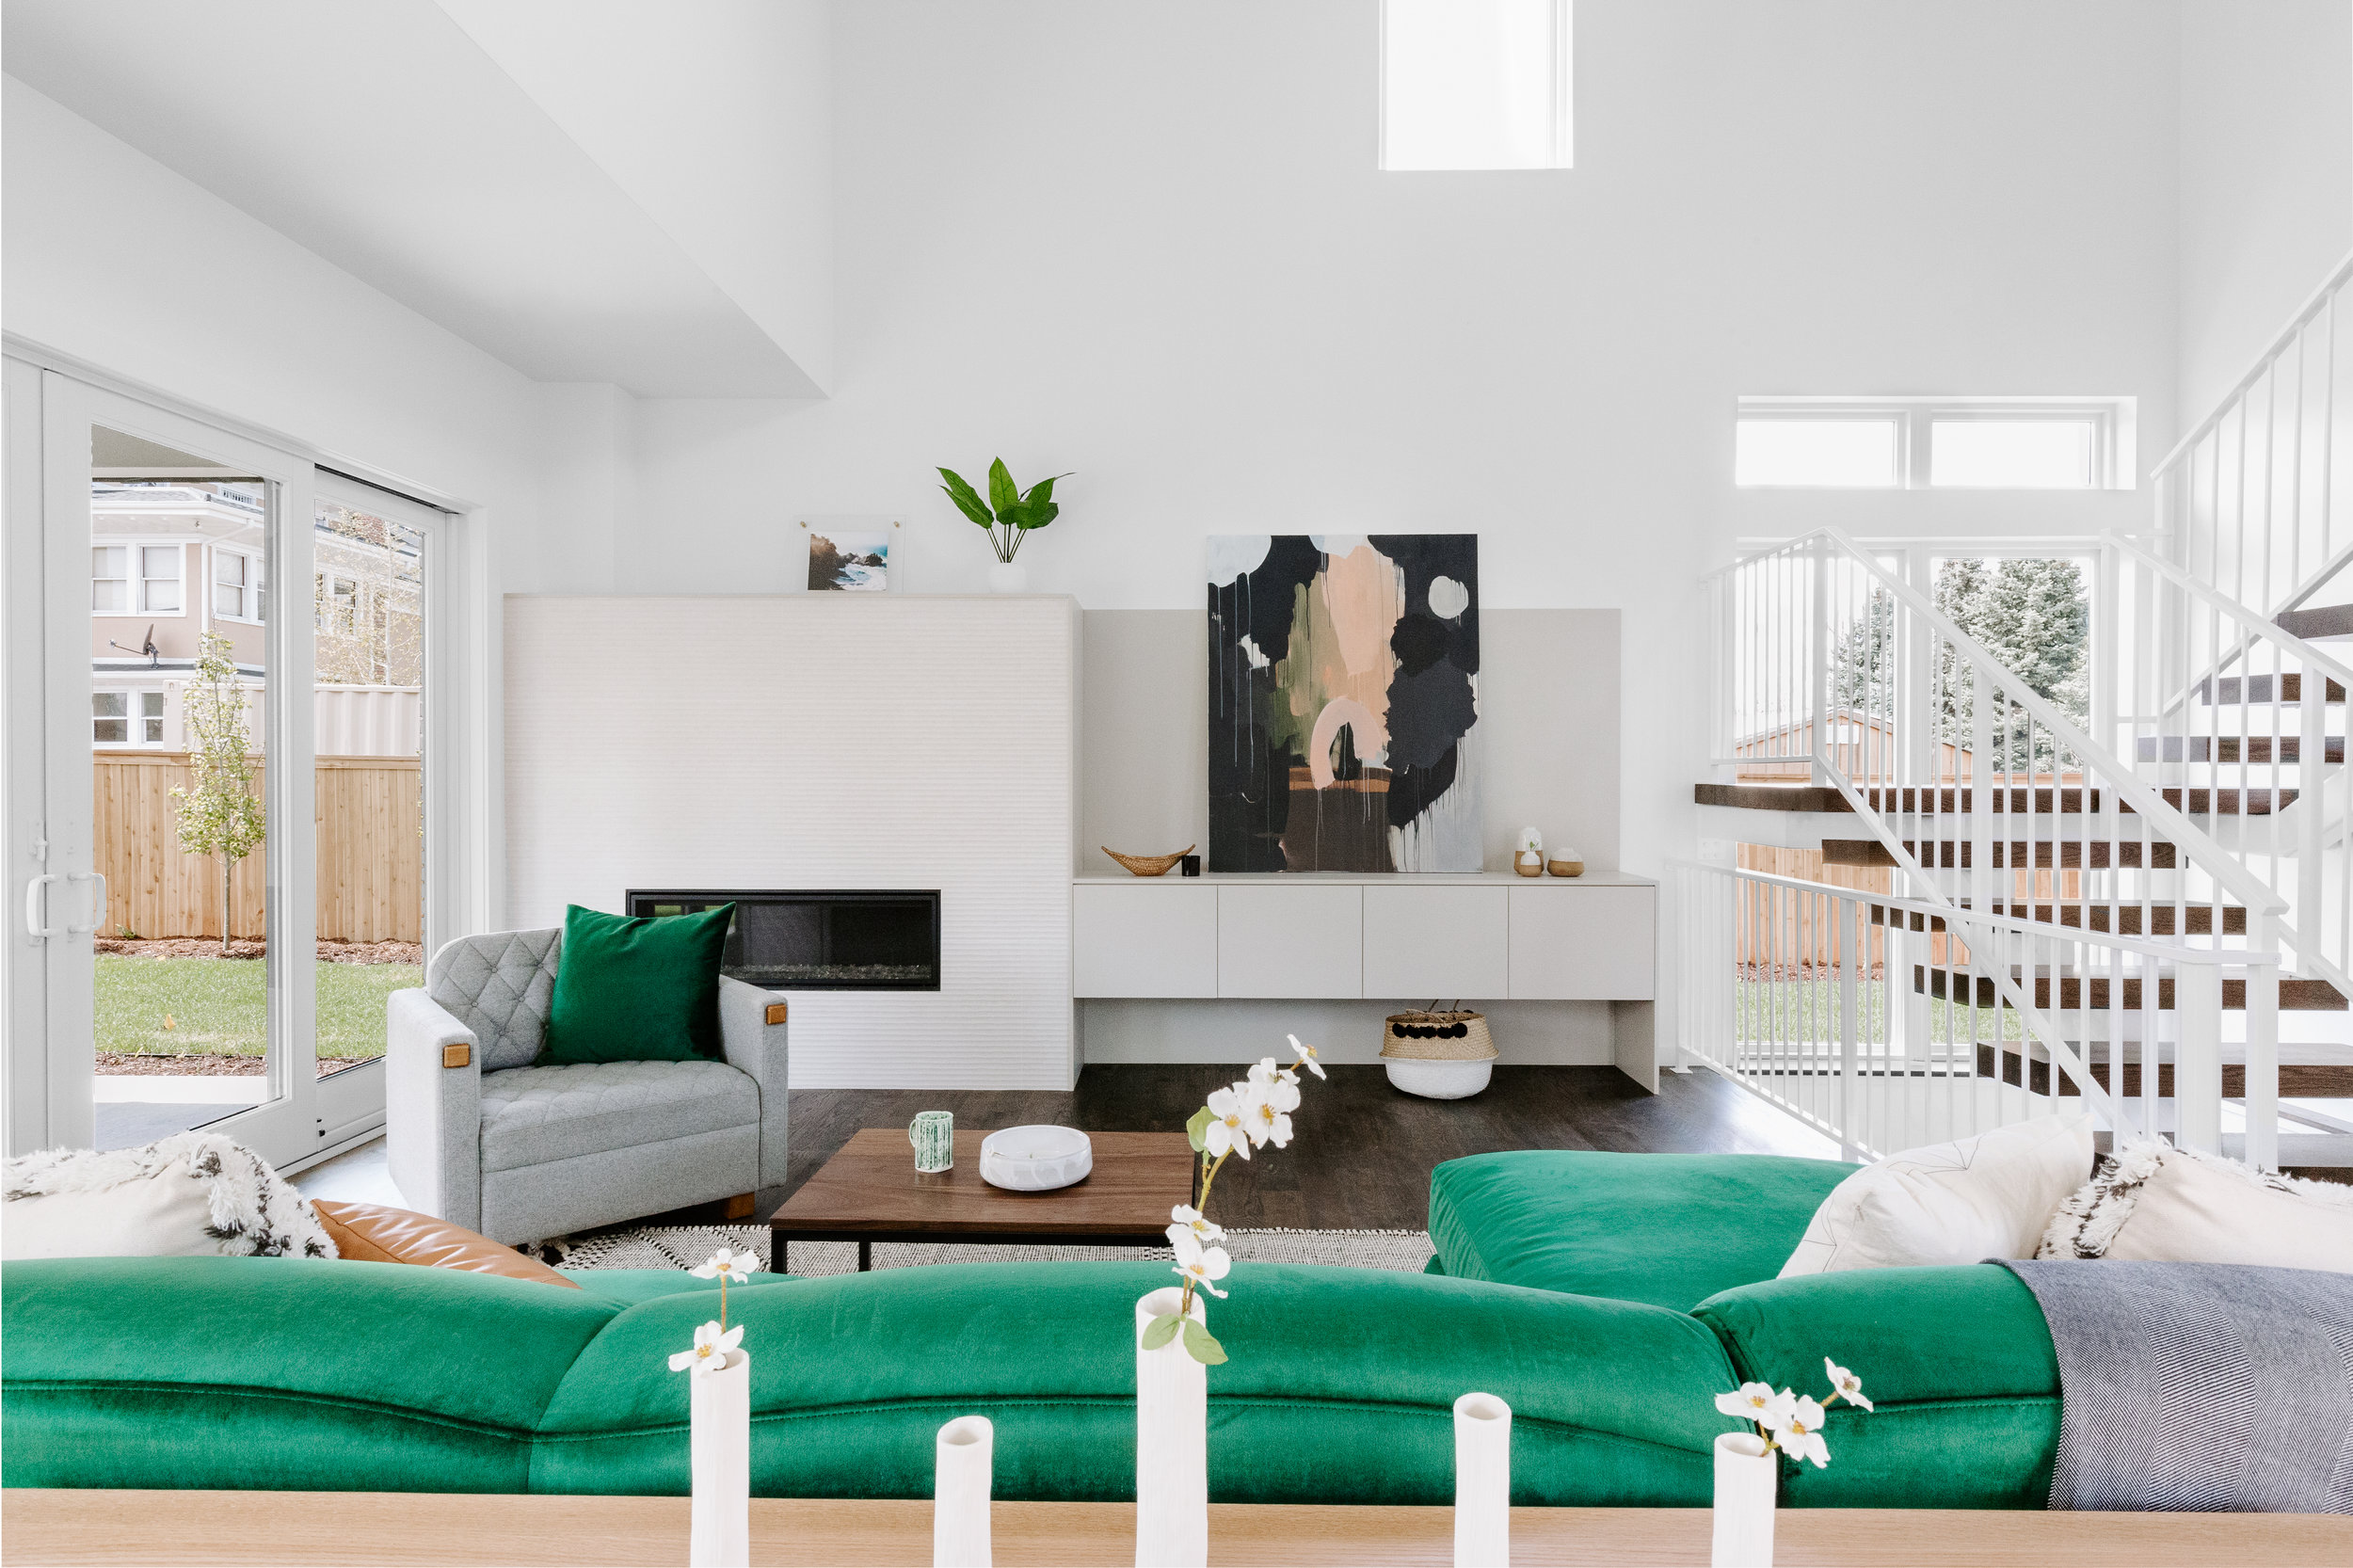 3057 S University - A modern farmhouse in the heart of the city. Listed by Gilda Zaragoza, Invalesco.For sale at $1.7 million